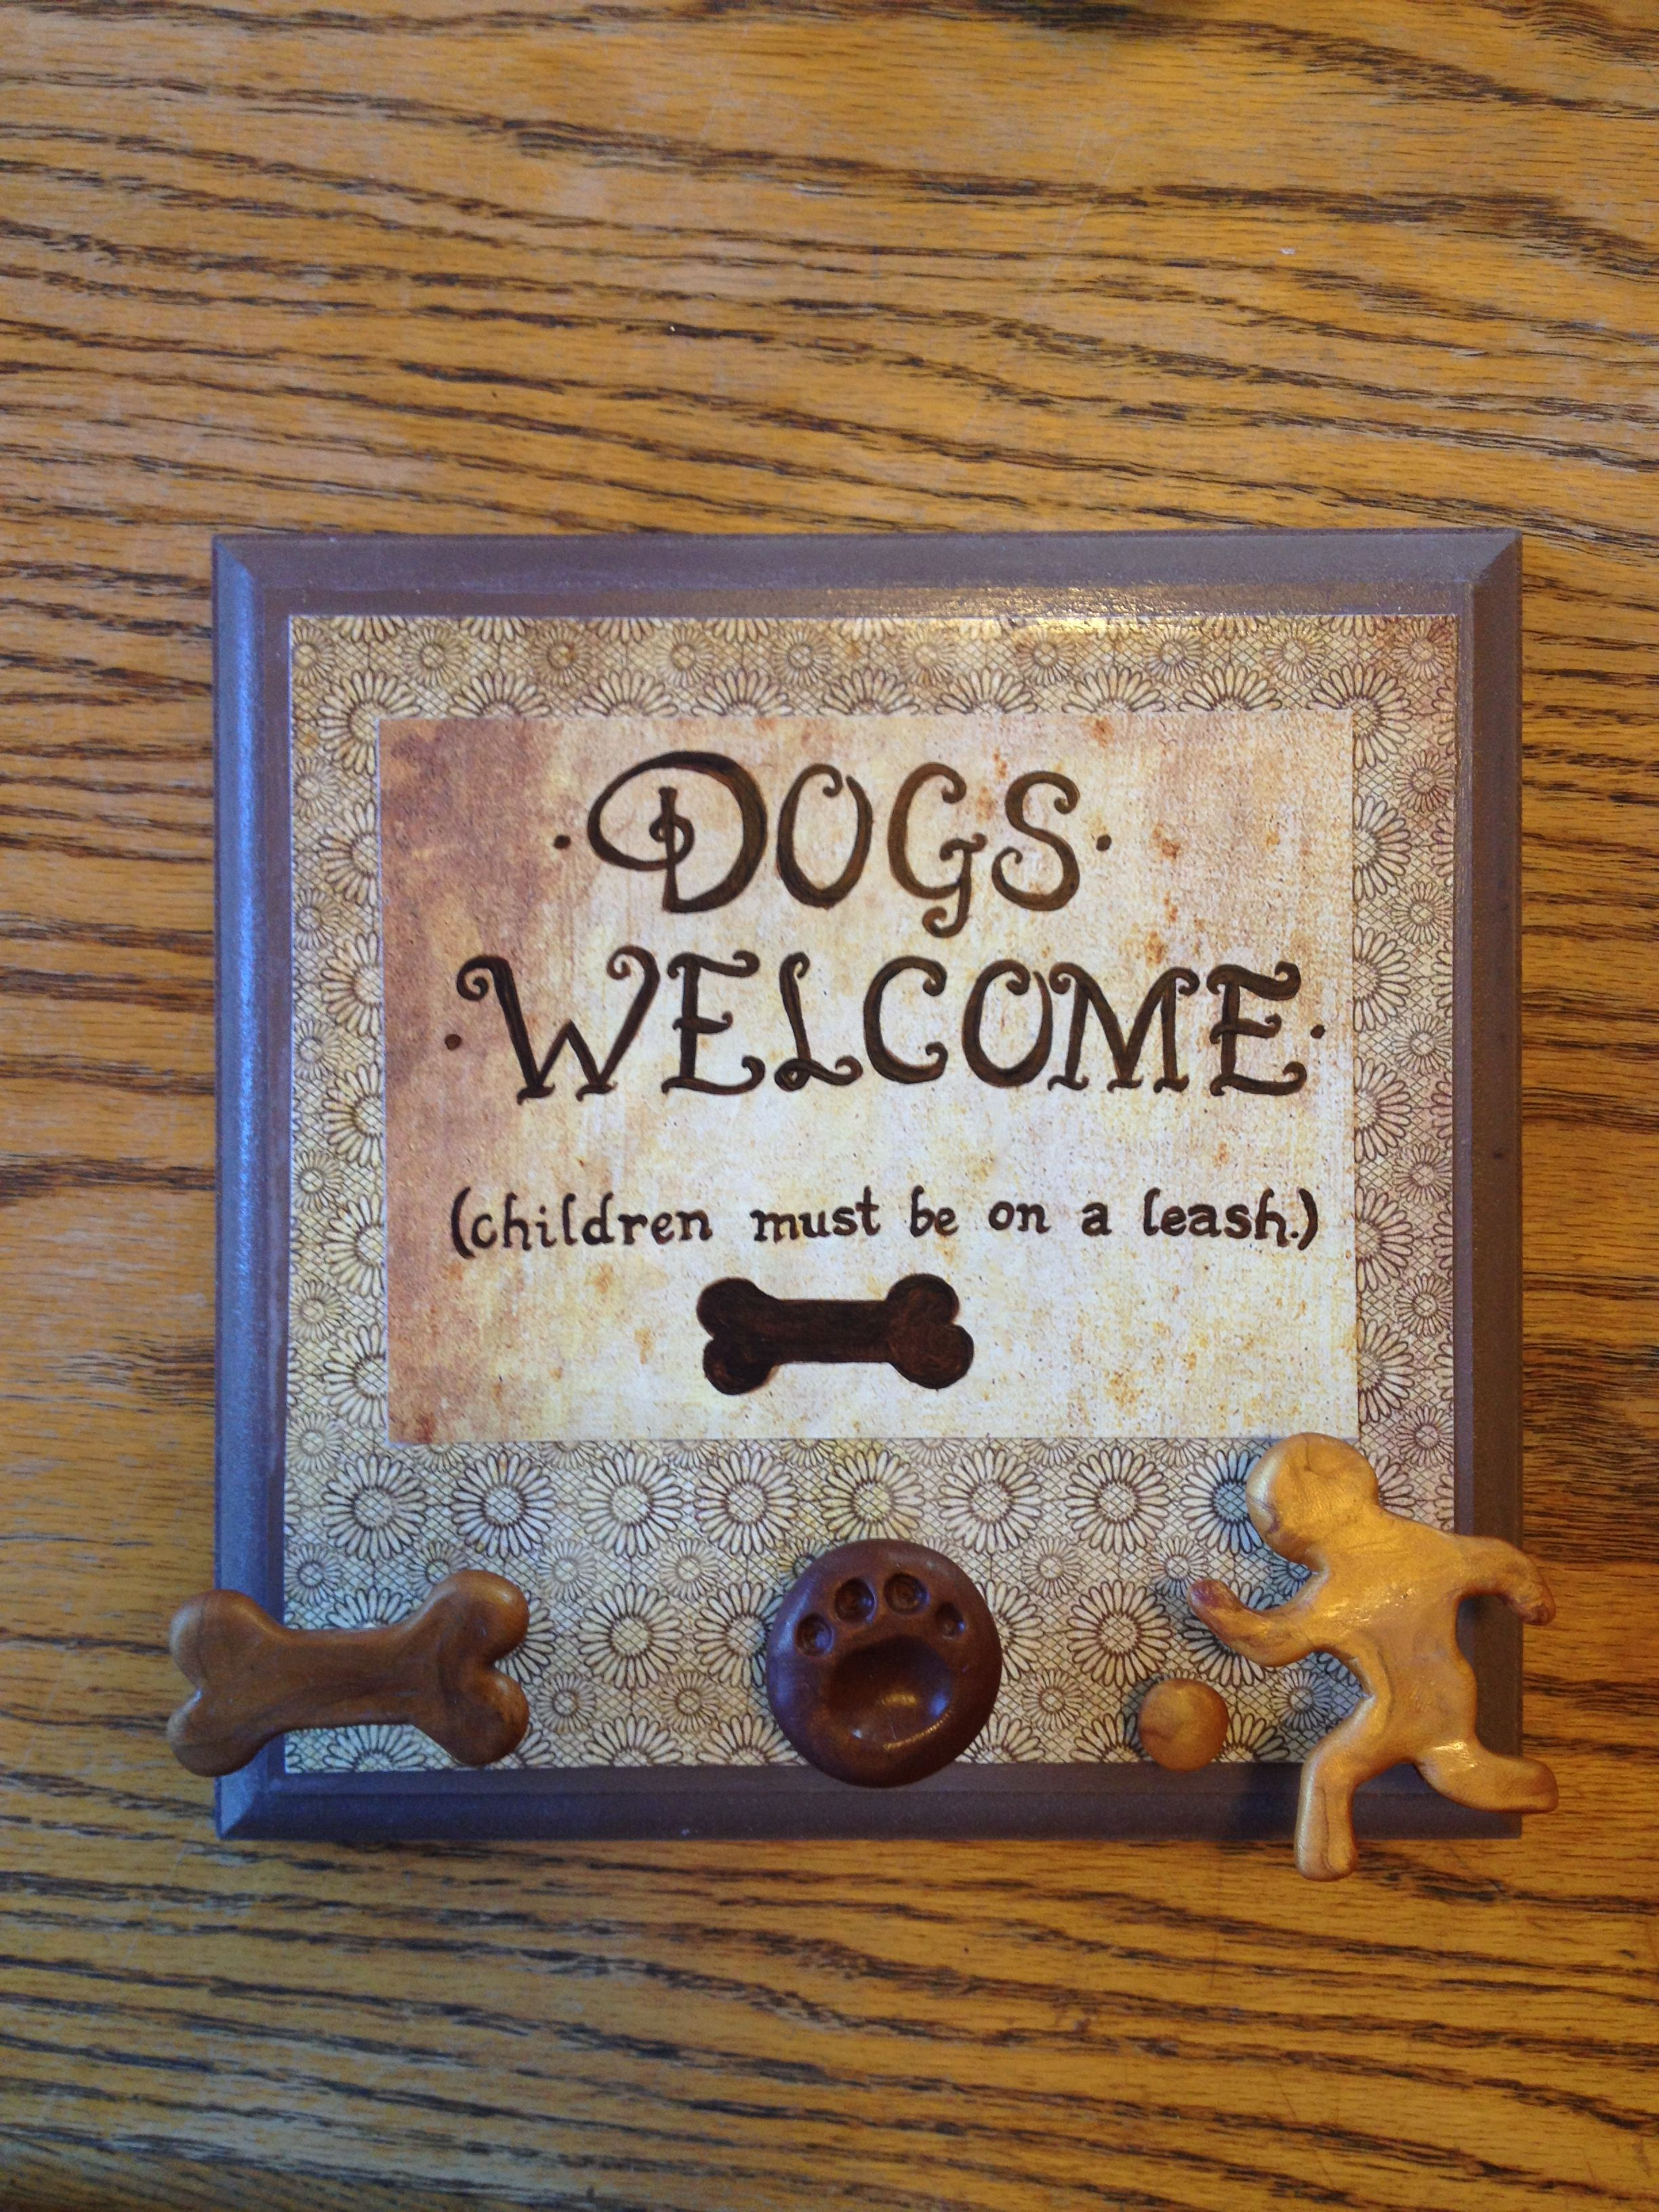 Scrapbook paper dogs - Mdf Board Clay Built Onto Screws For Hooks Scrapbook Paper Paint And Mod